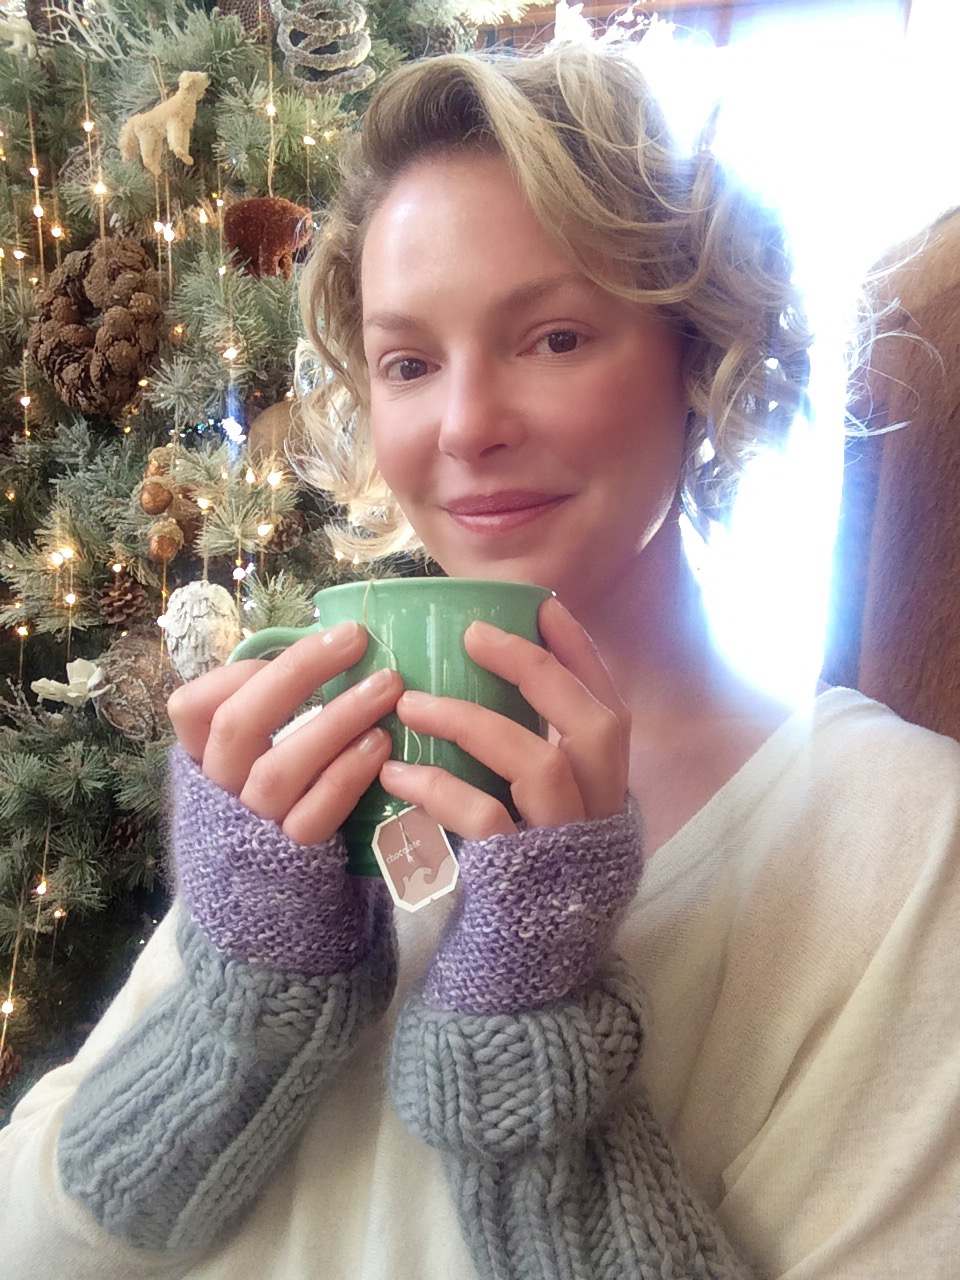 Katherine Heigl Wearing Her Hand Knit Cuffed Hand Warmers